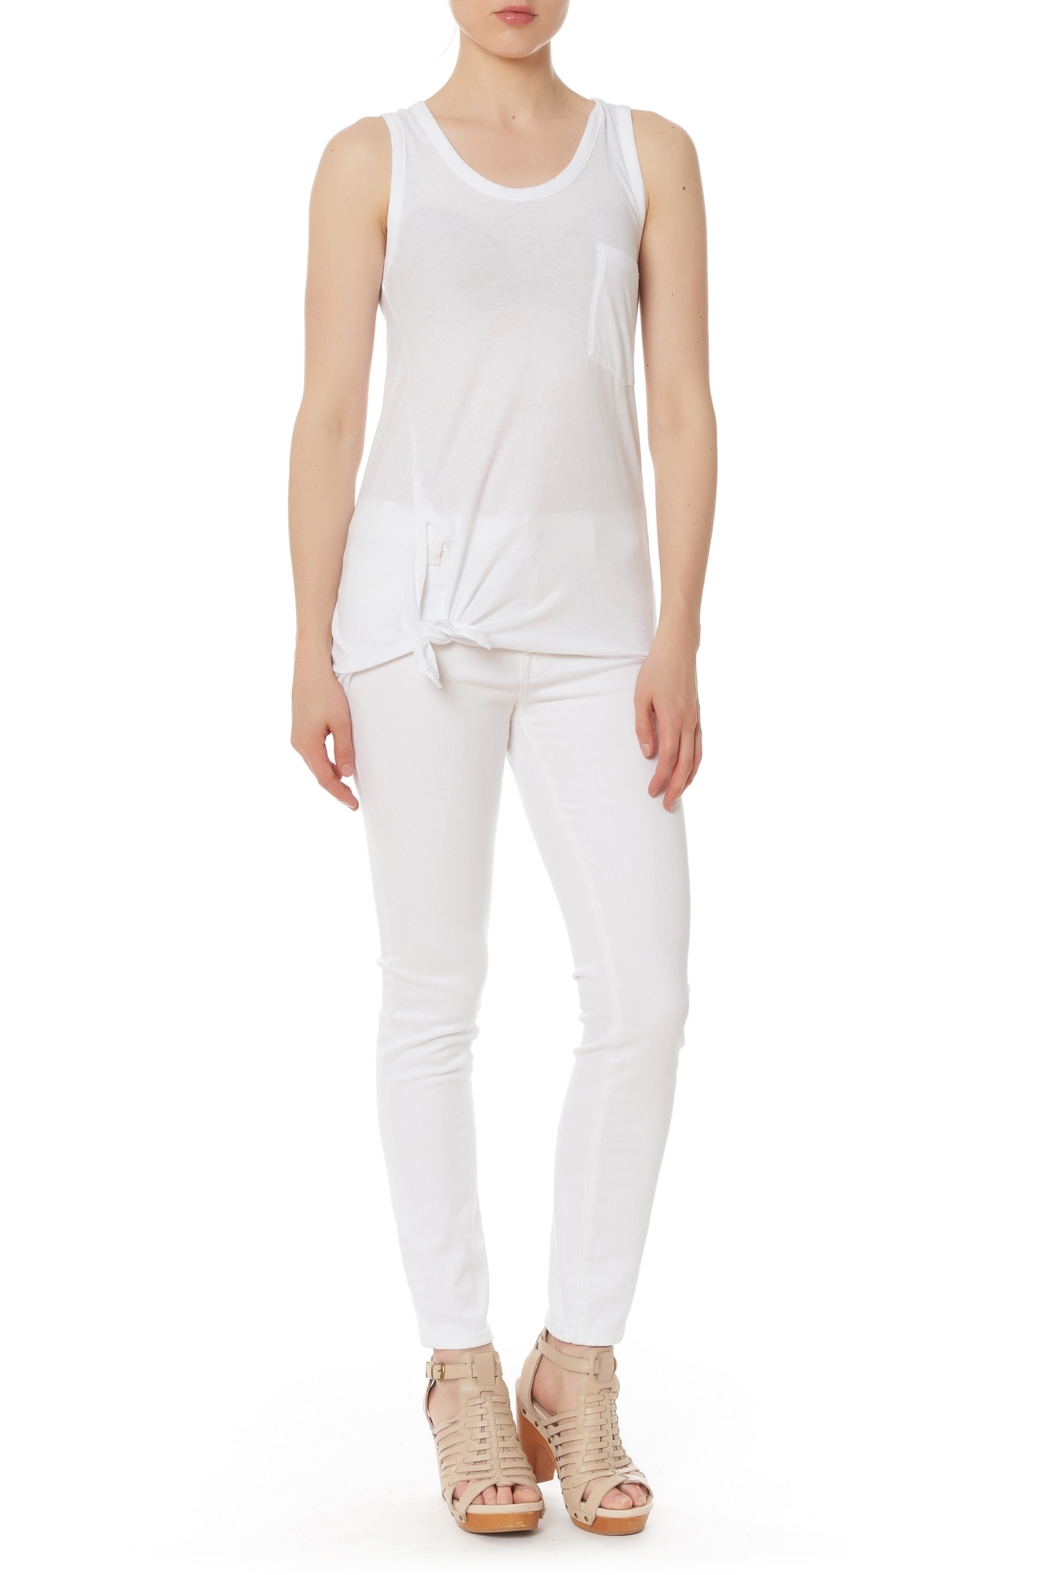 Bobi Los Angeles Side Knot Top - Side Cropped Image